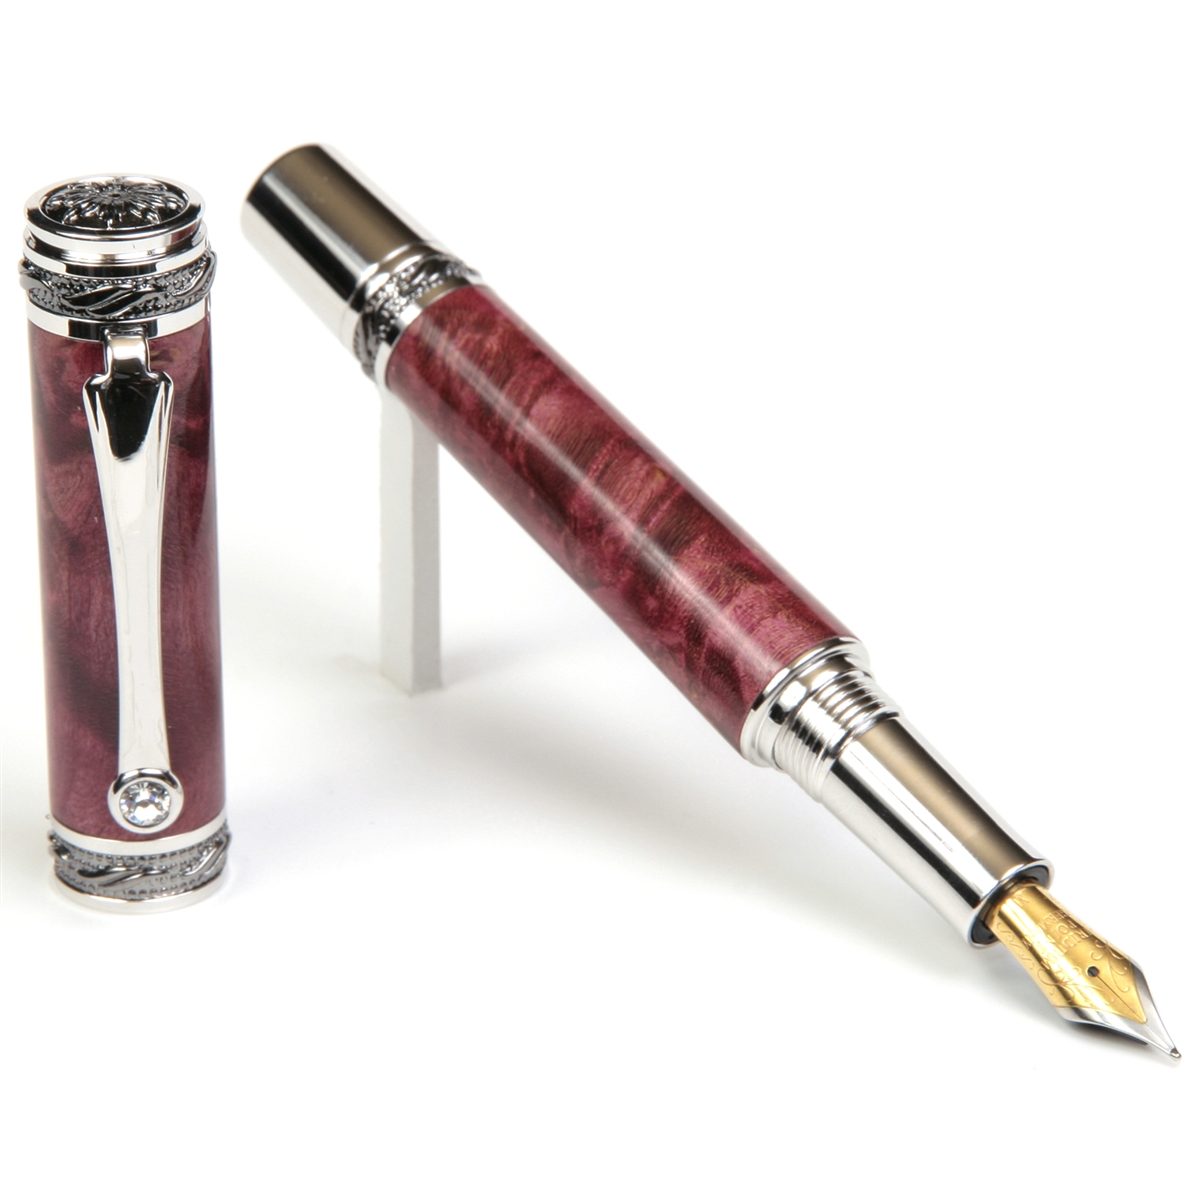 Majestic Fountain Pen - Red Maple Burl